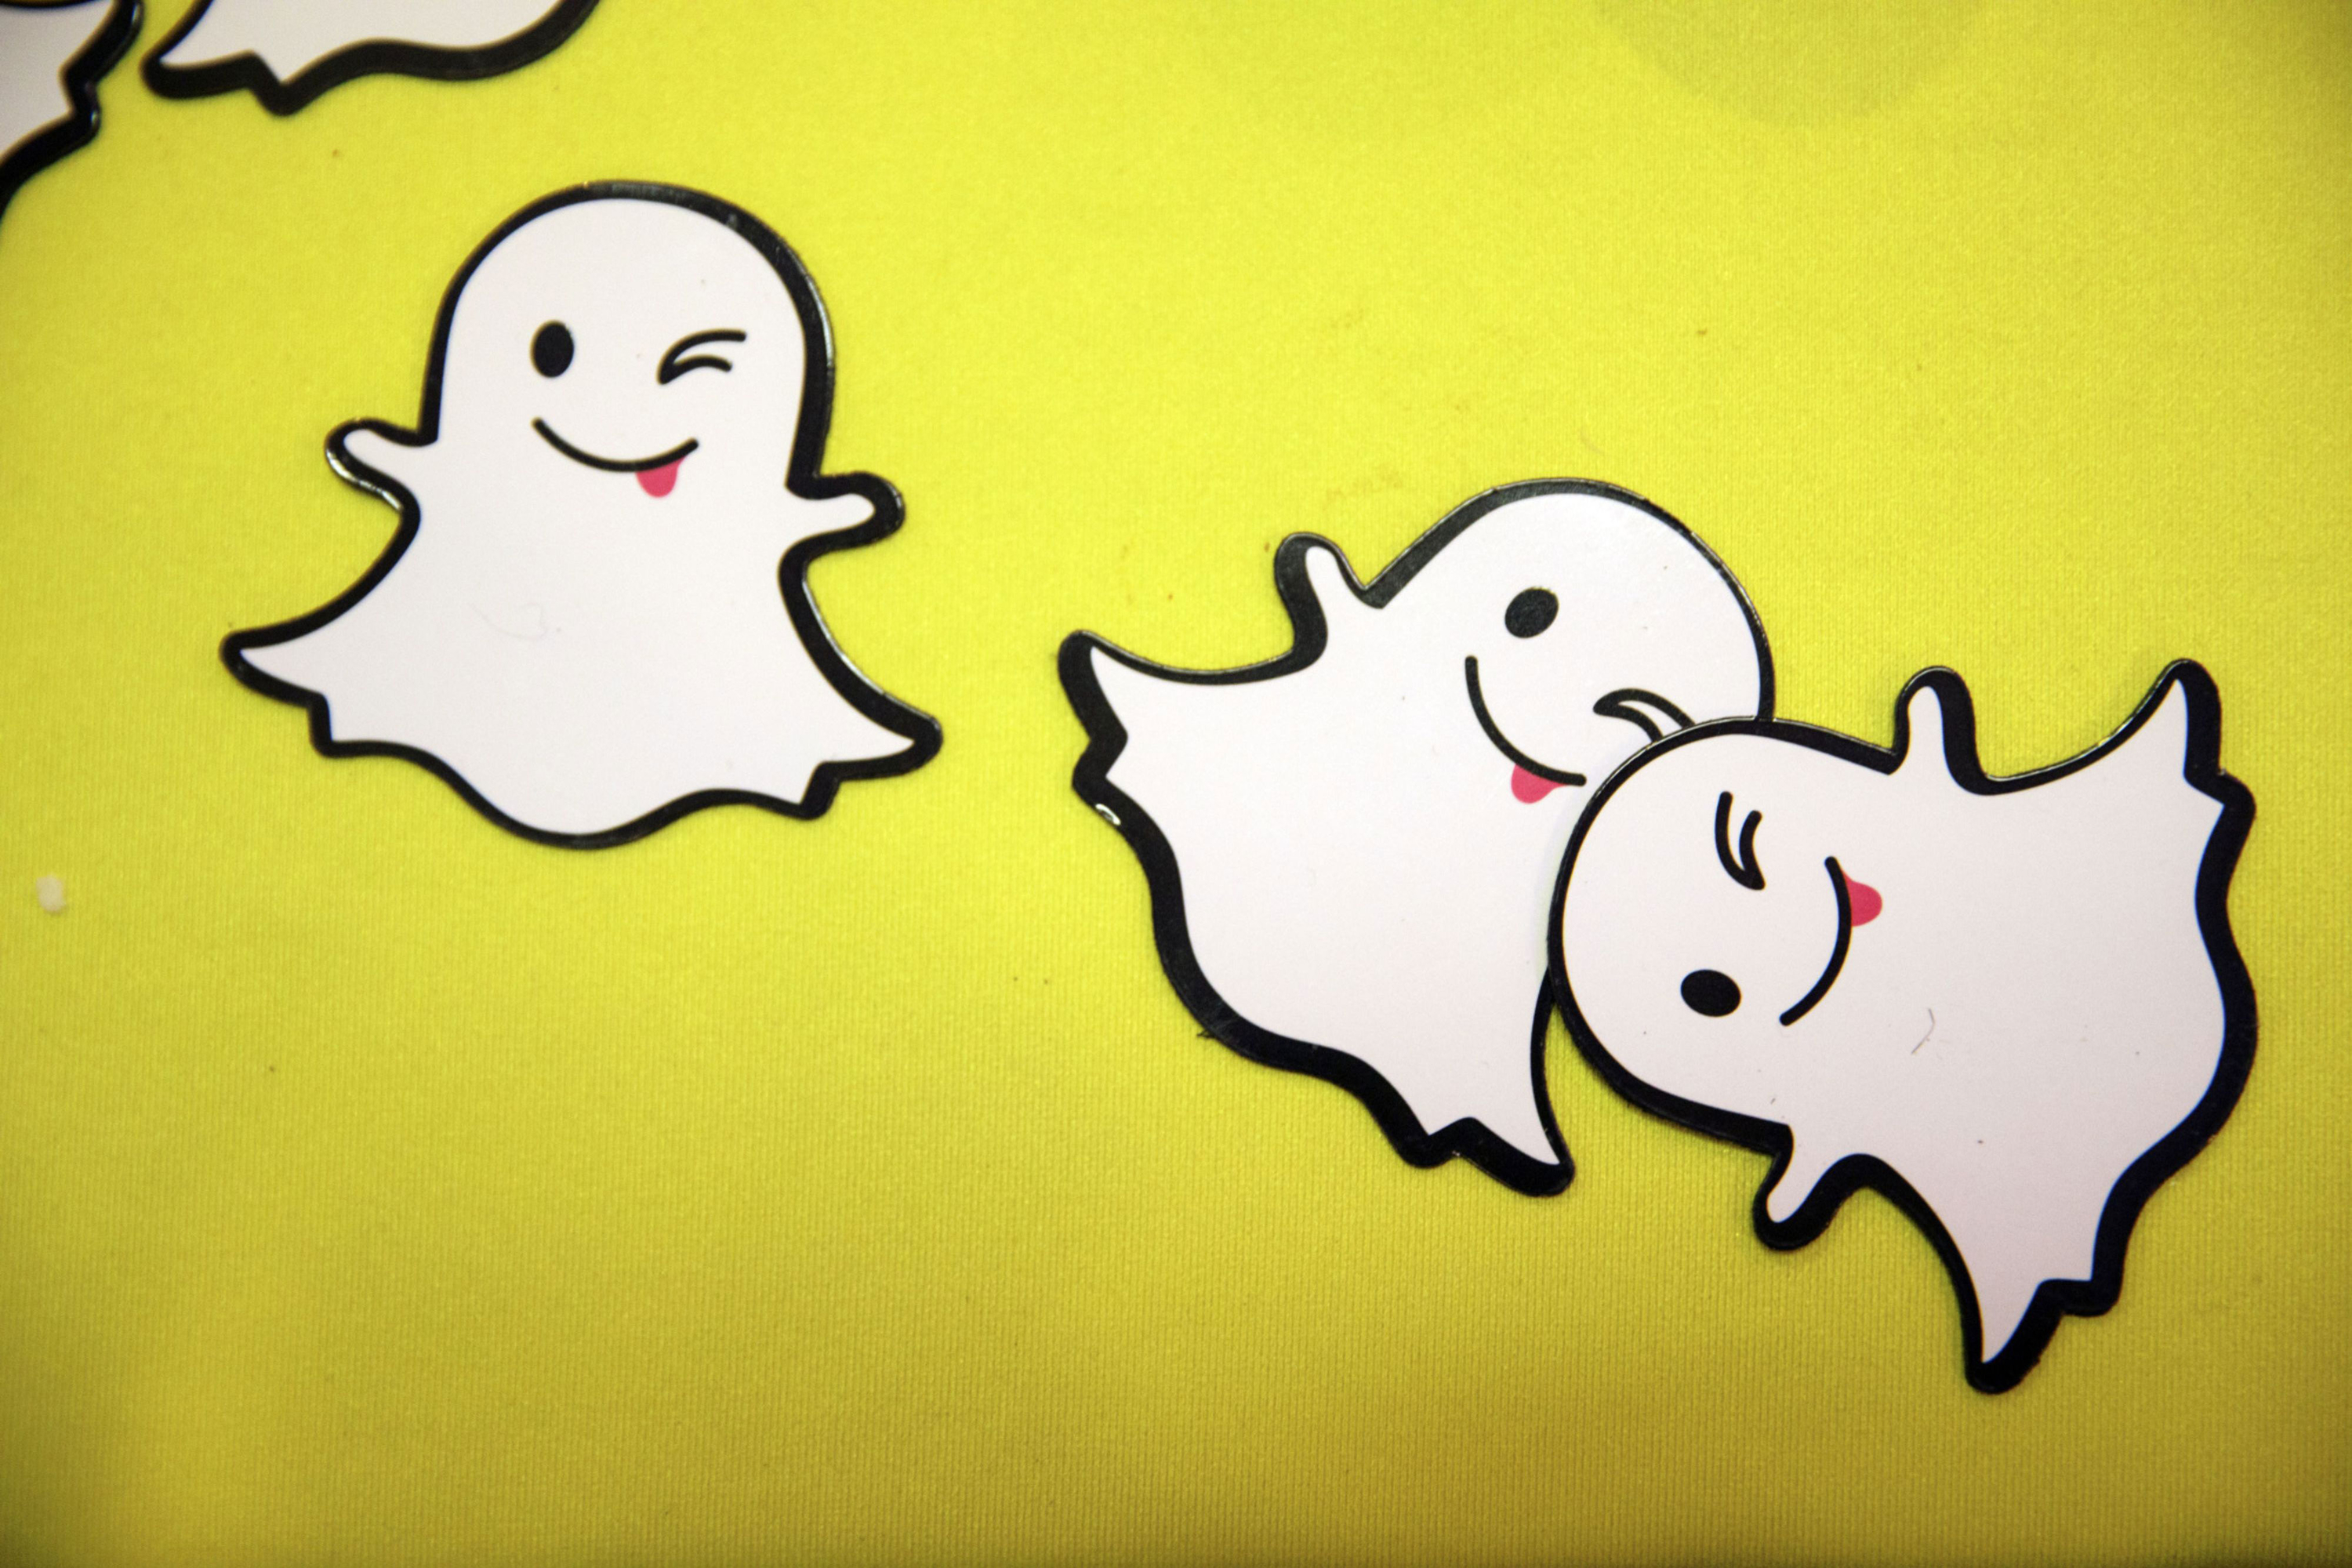 Snaphchat CEO hints at ads in Spotlight and praises Apple for 'high integrity' on privacy